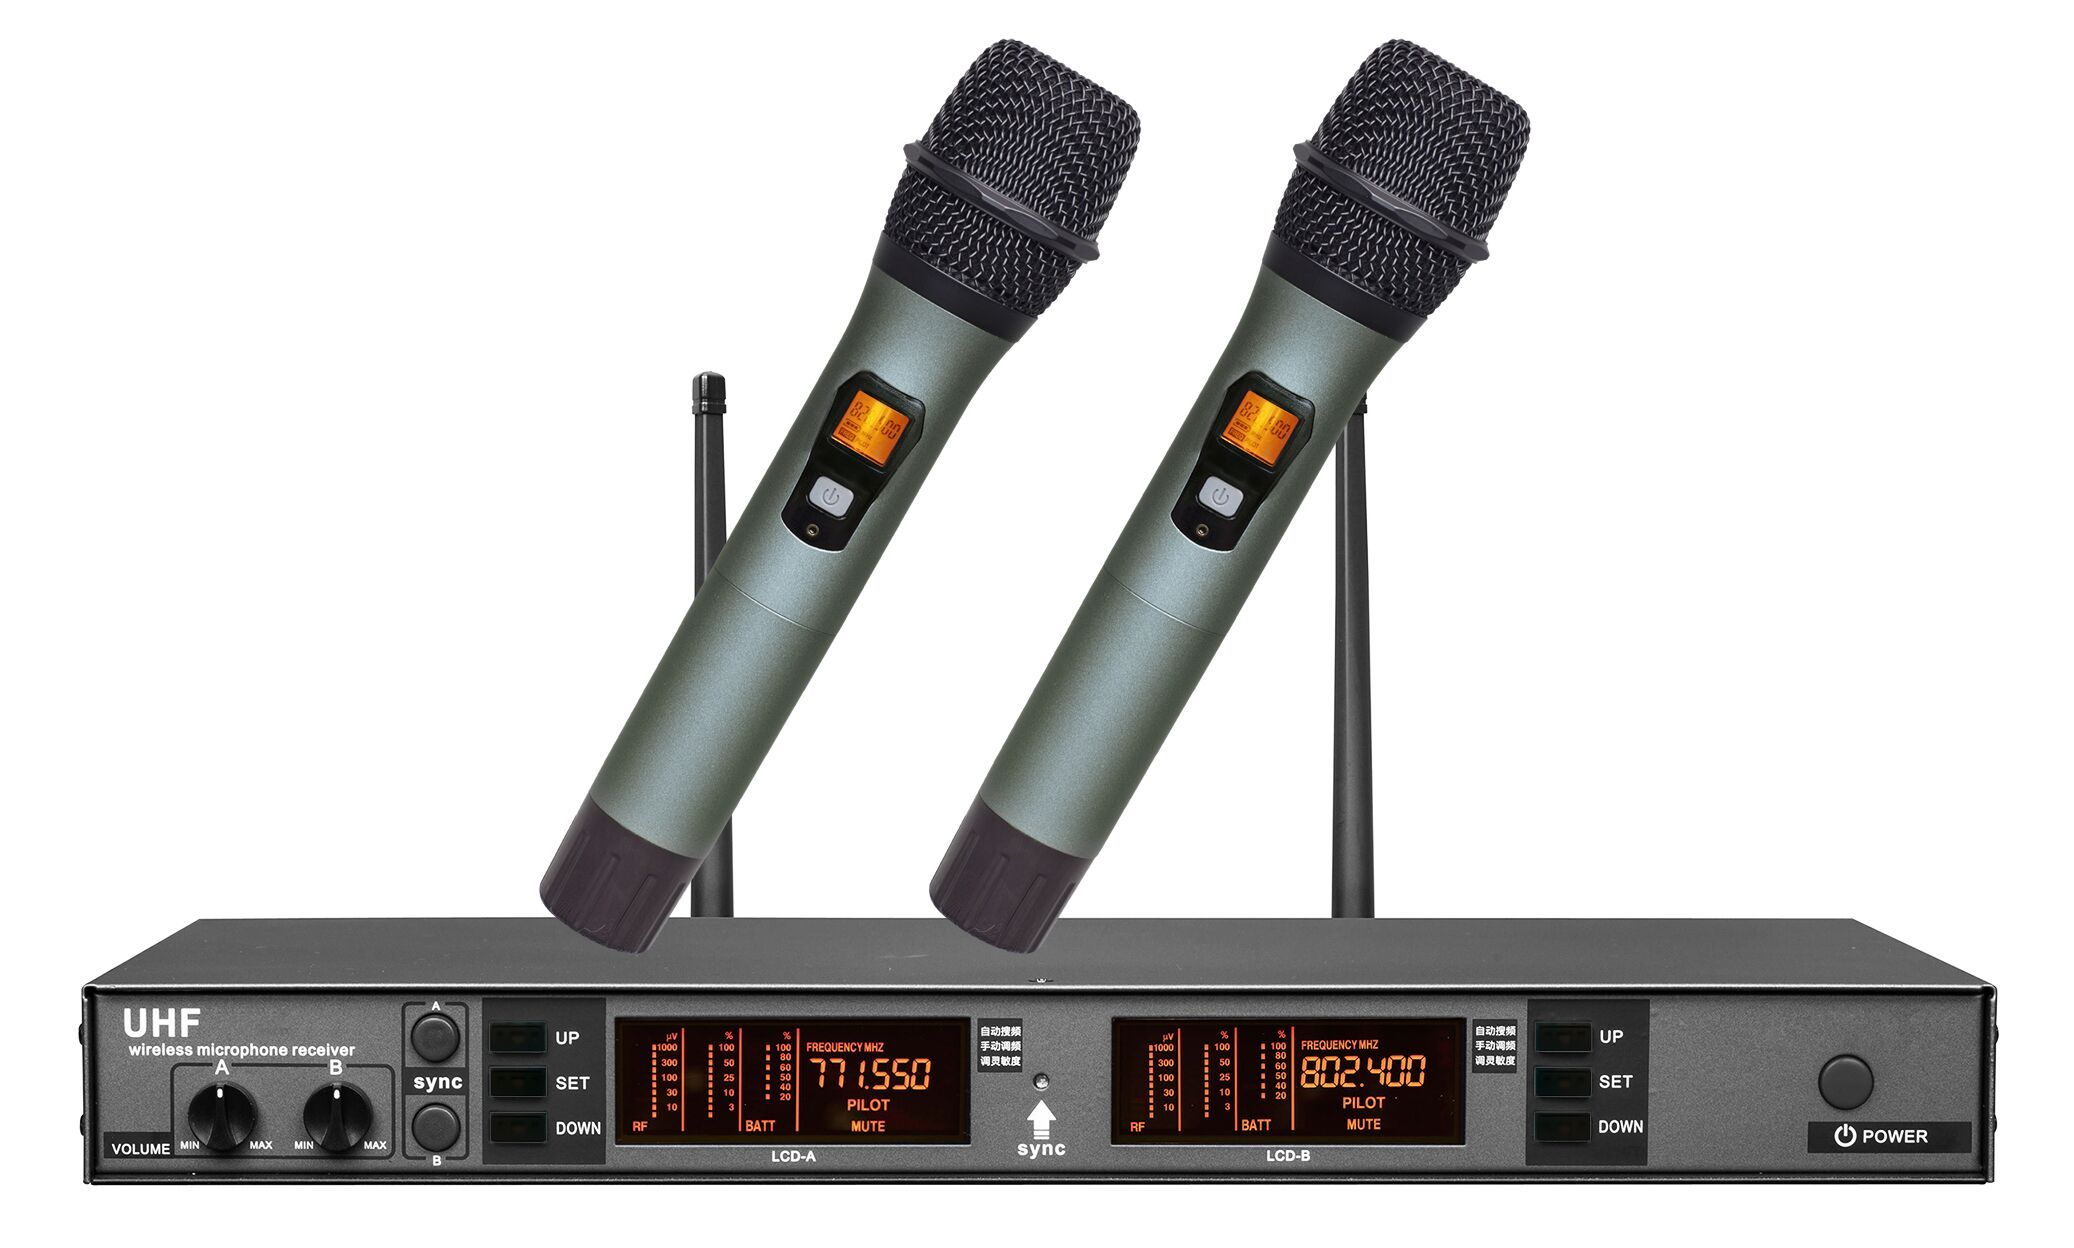 Our Main Product Is Uhf Wireless Microphone 2125 Channel Reveiver Receiver Circuit Pll Frequency